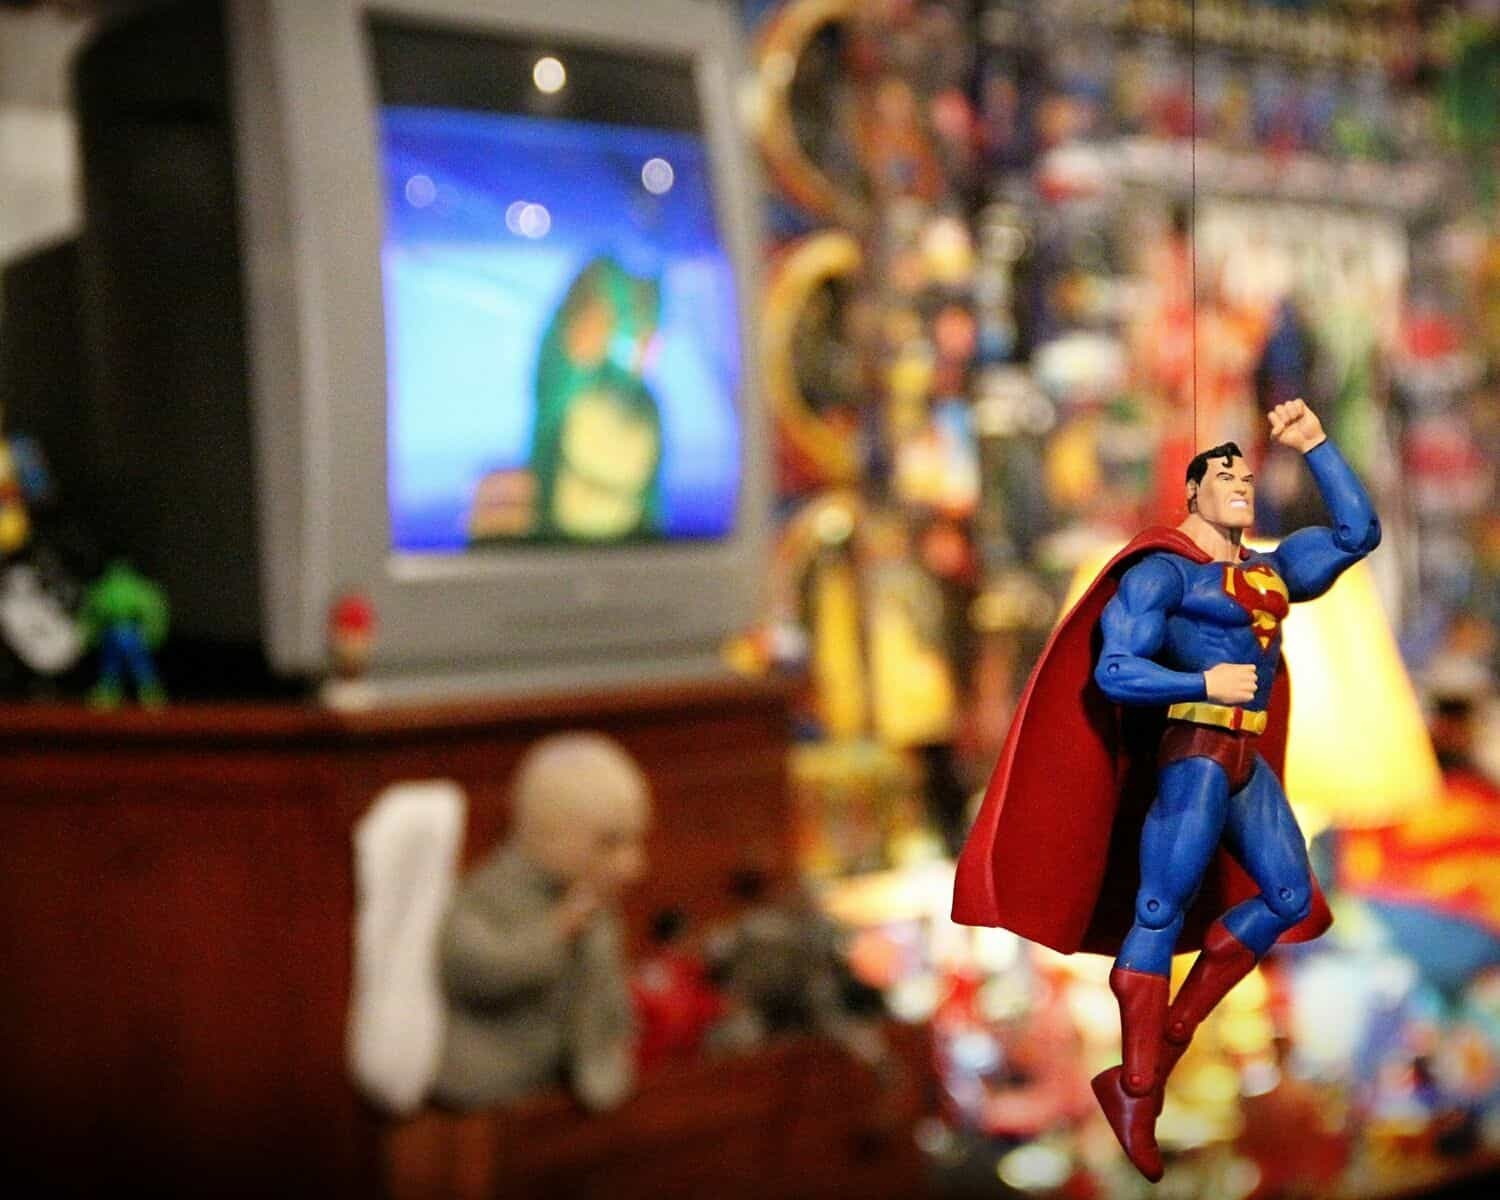 Superman at the Toy and Action Figure Museum in Pauls Valley, Oklahoma